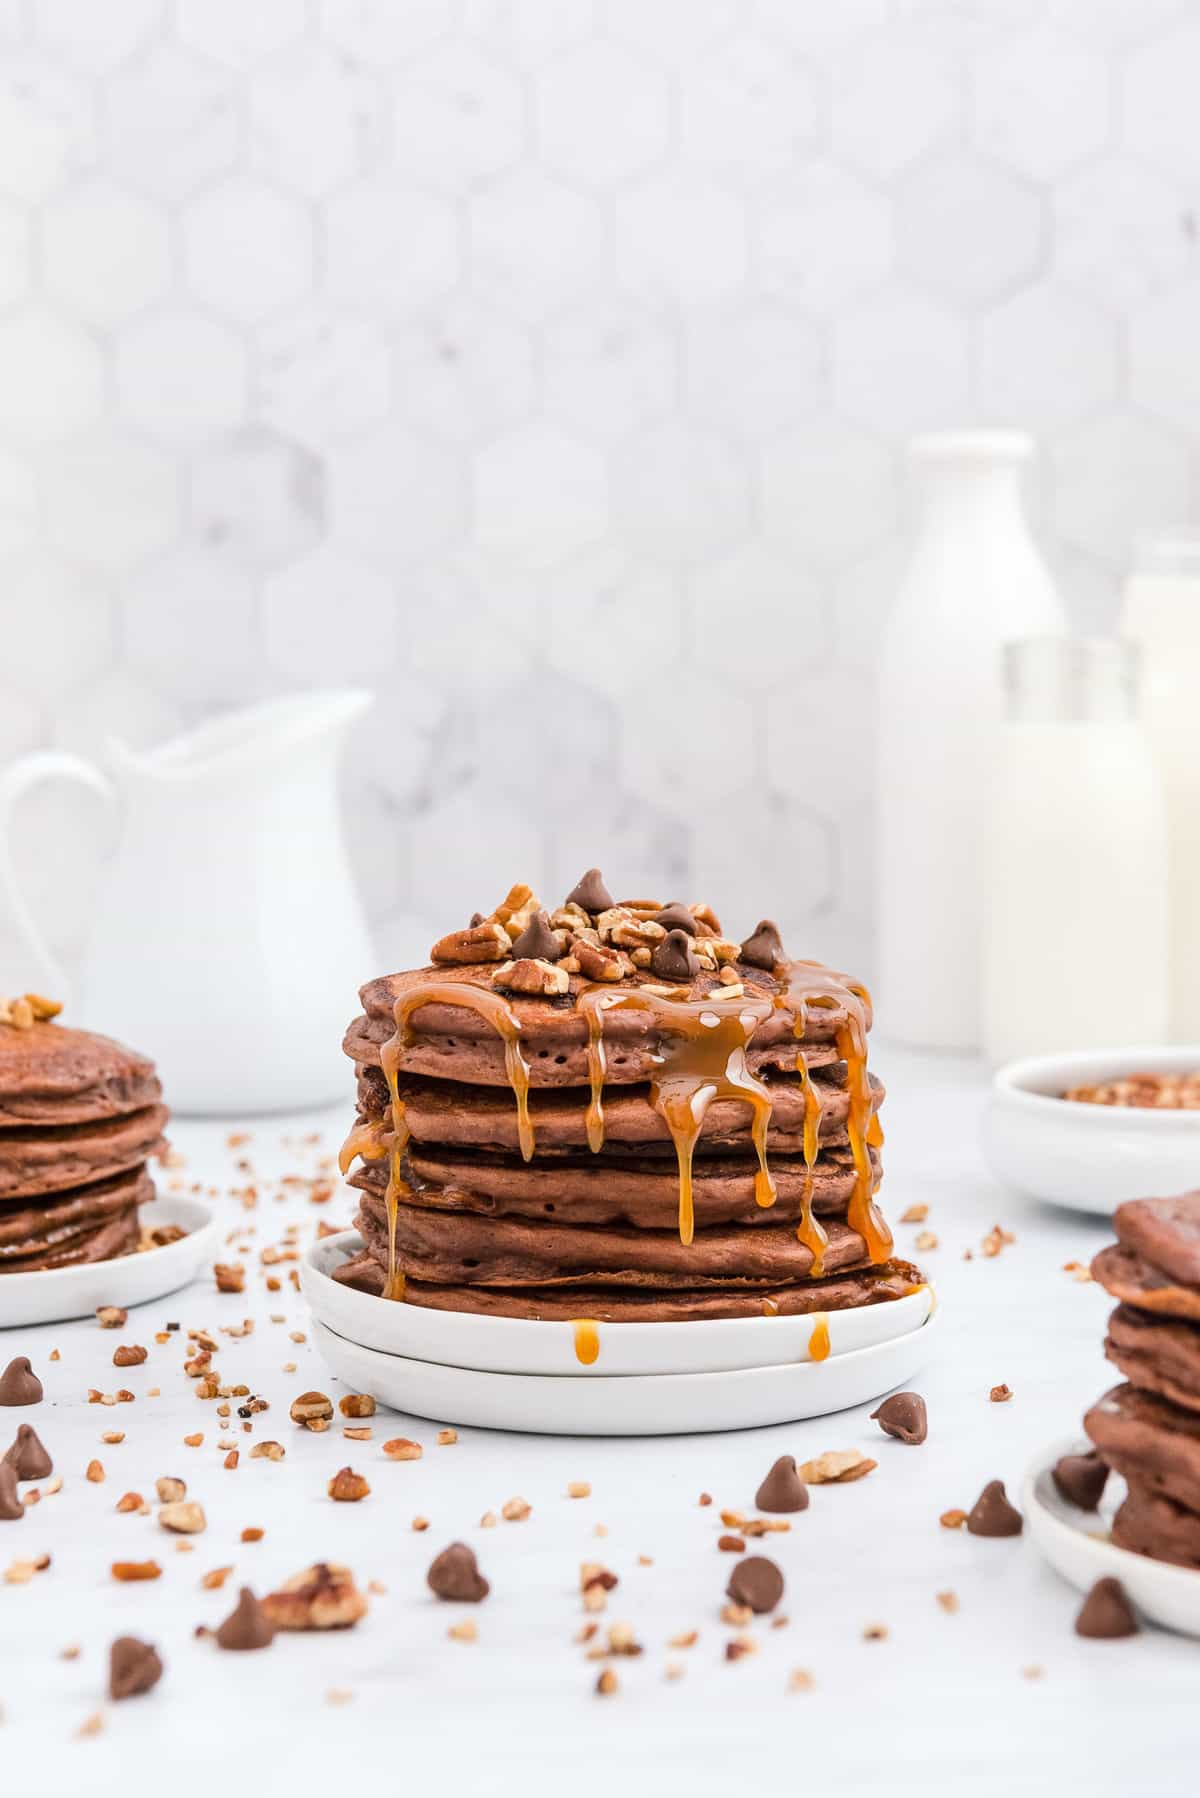 Stack of turtle pancakes with caramel, pecans, and chocolate chips.